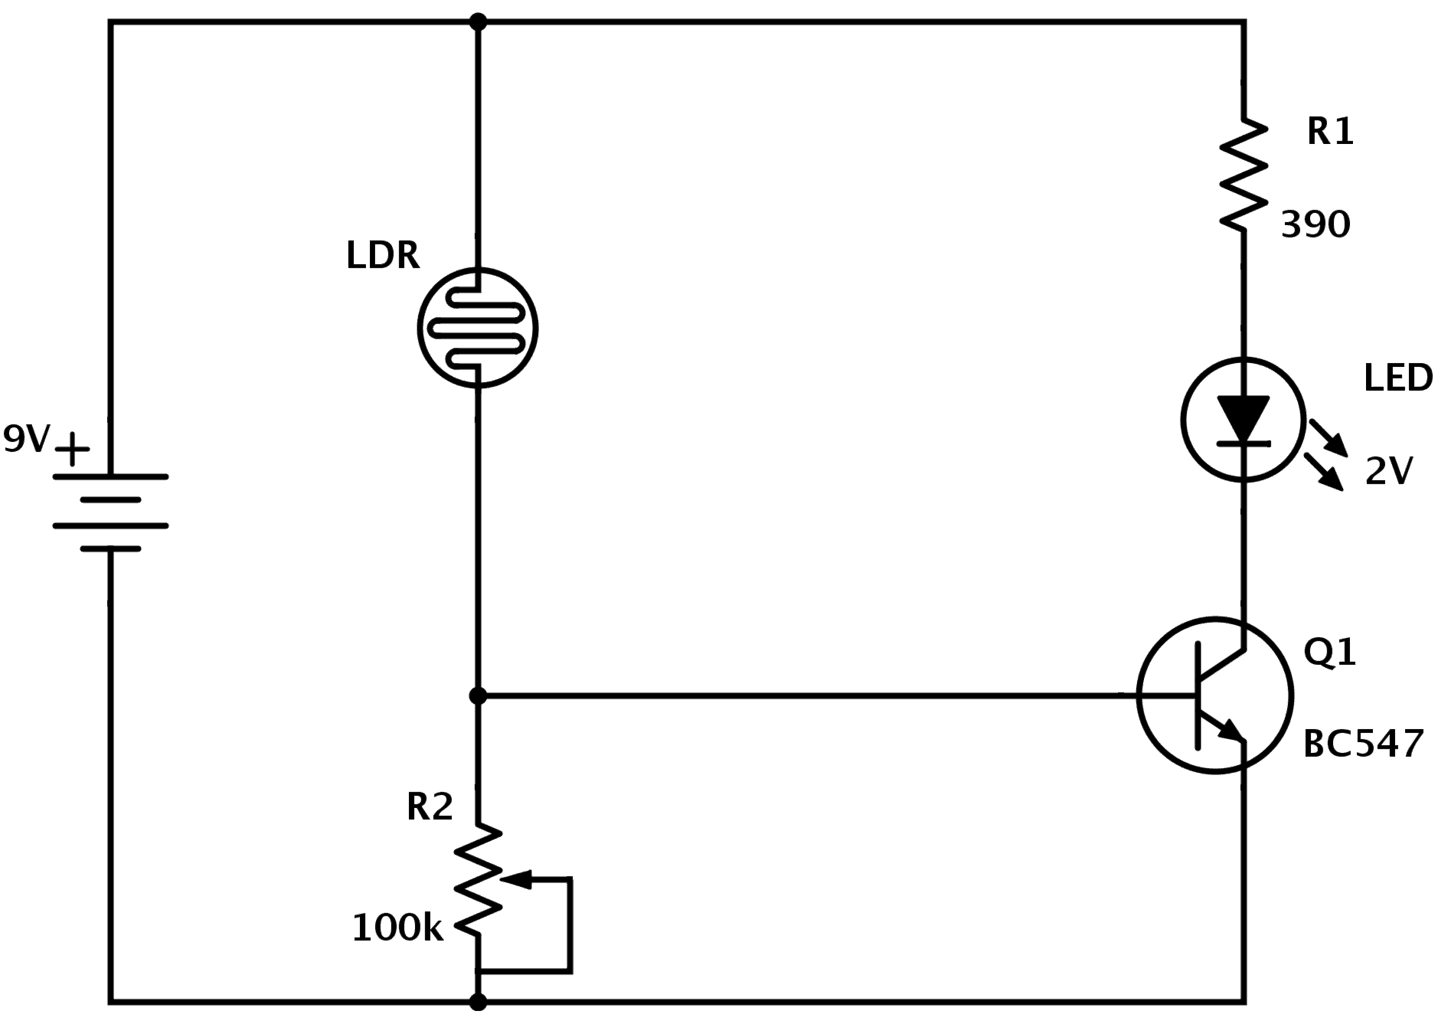 LDR circuit improved circuit diagram how to read and understand any schematic simple circuit diagram at fashall.co